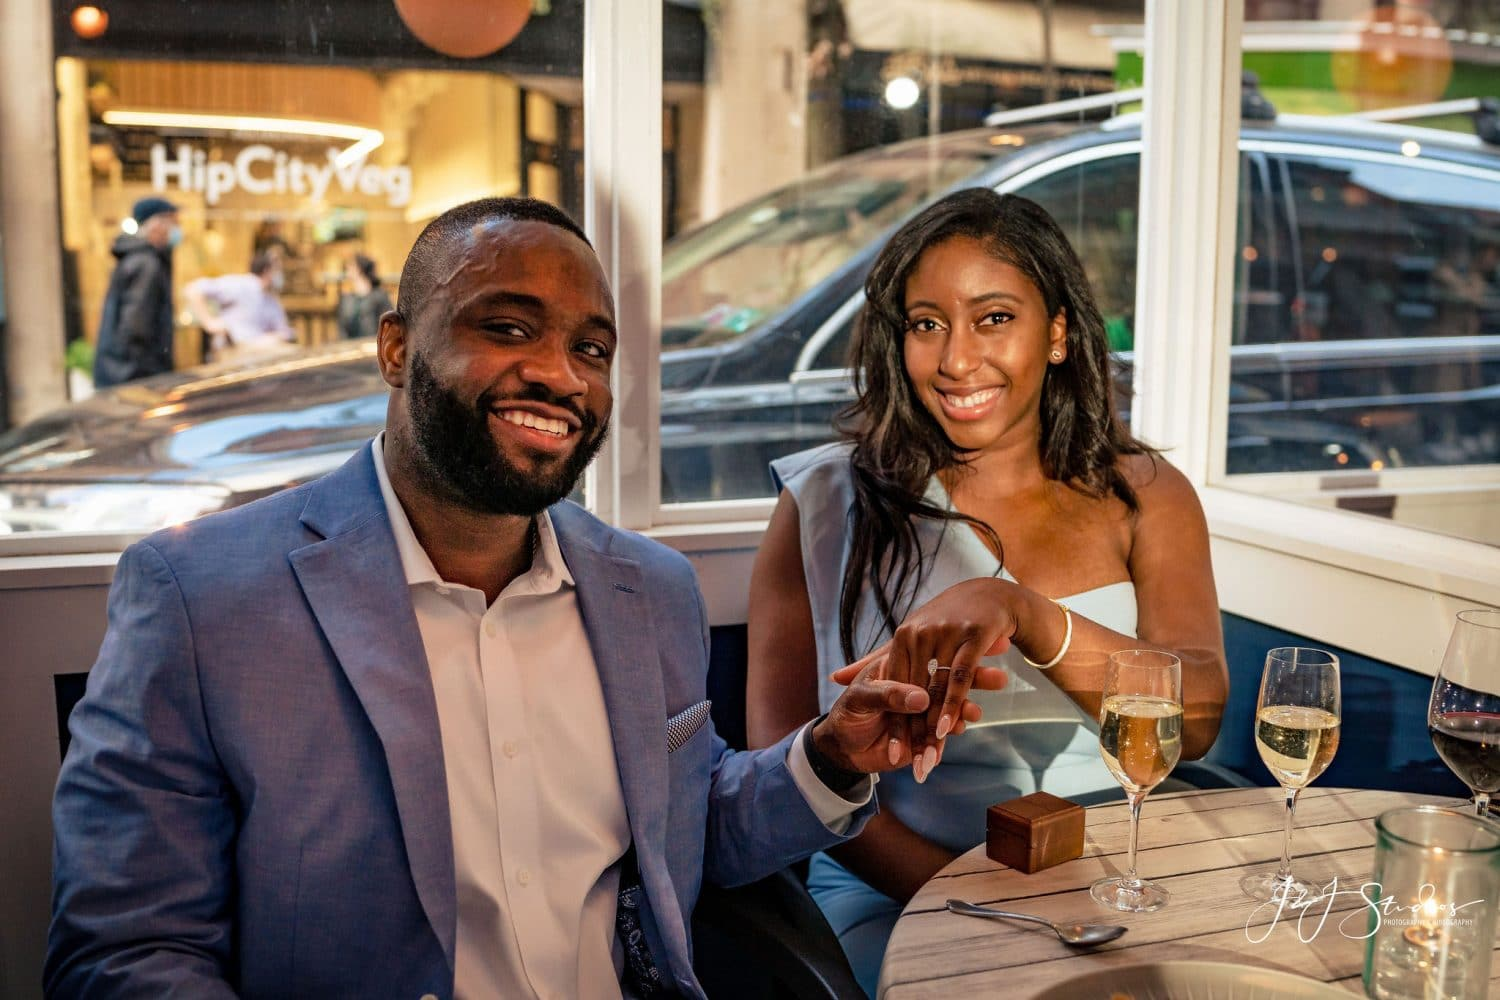 Philly proposal photography and videography